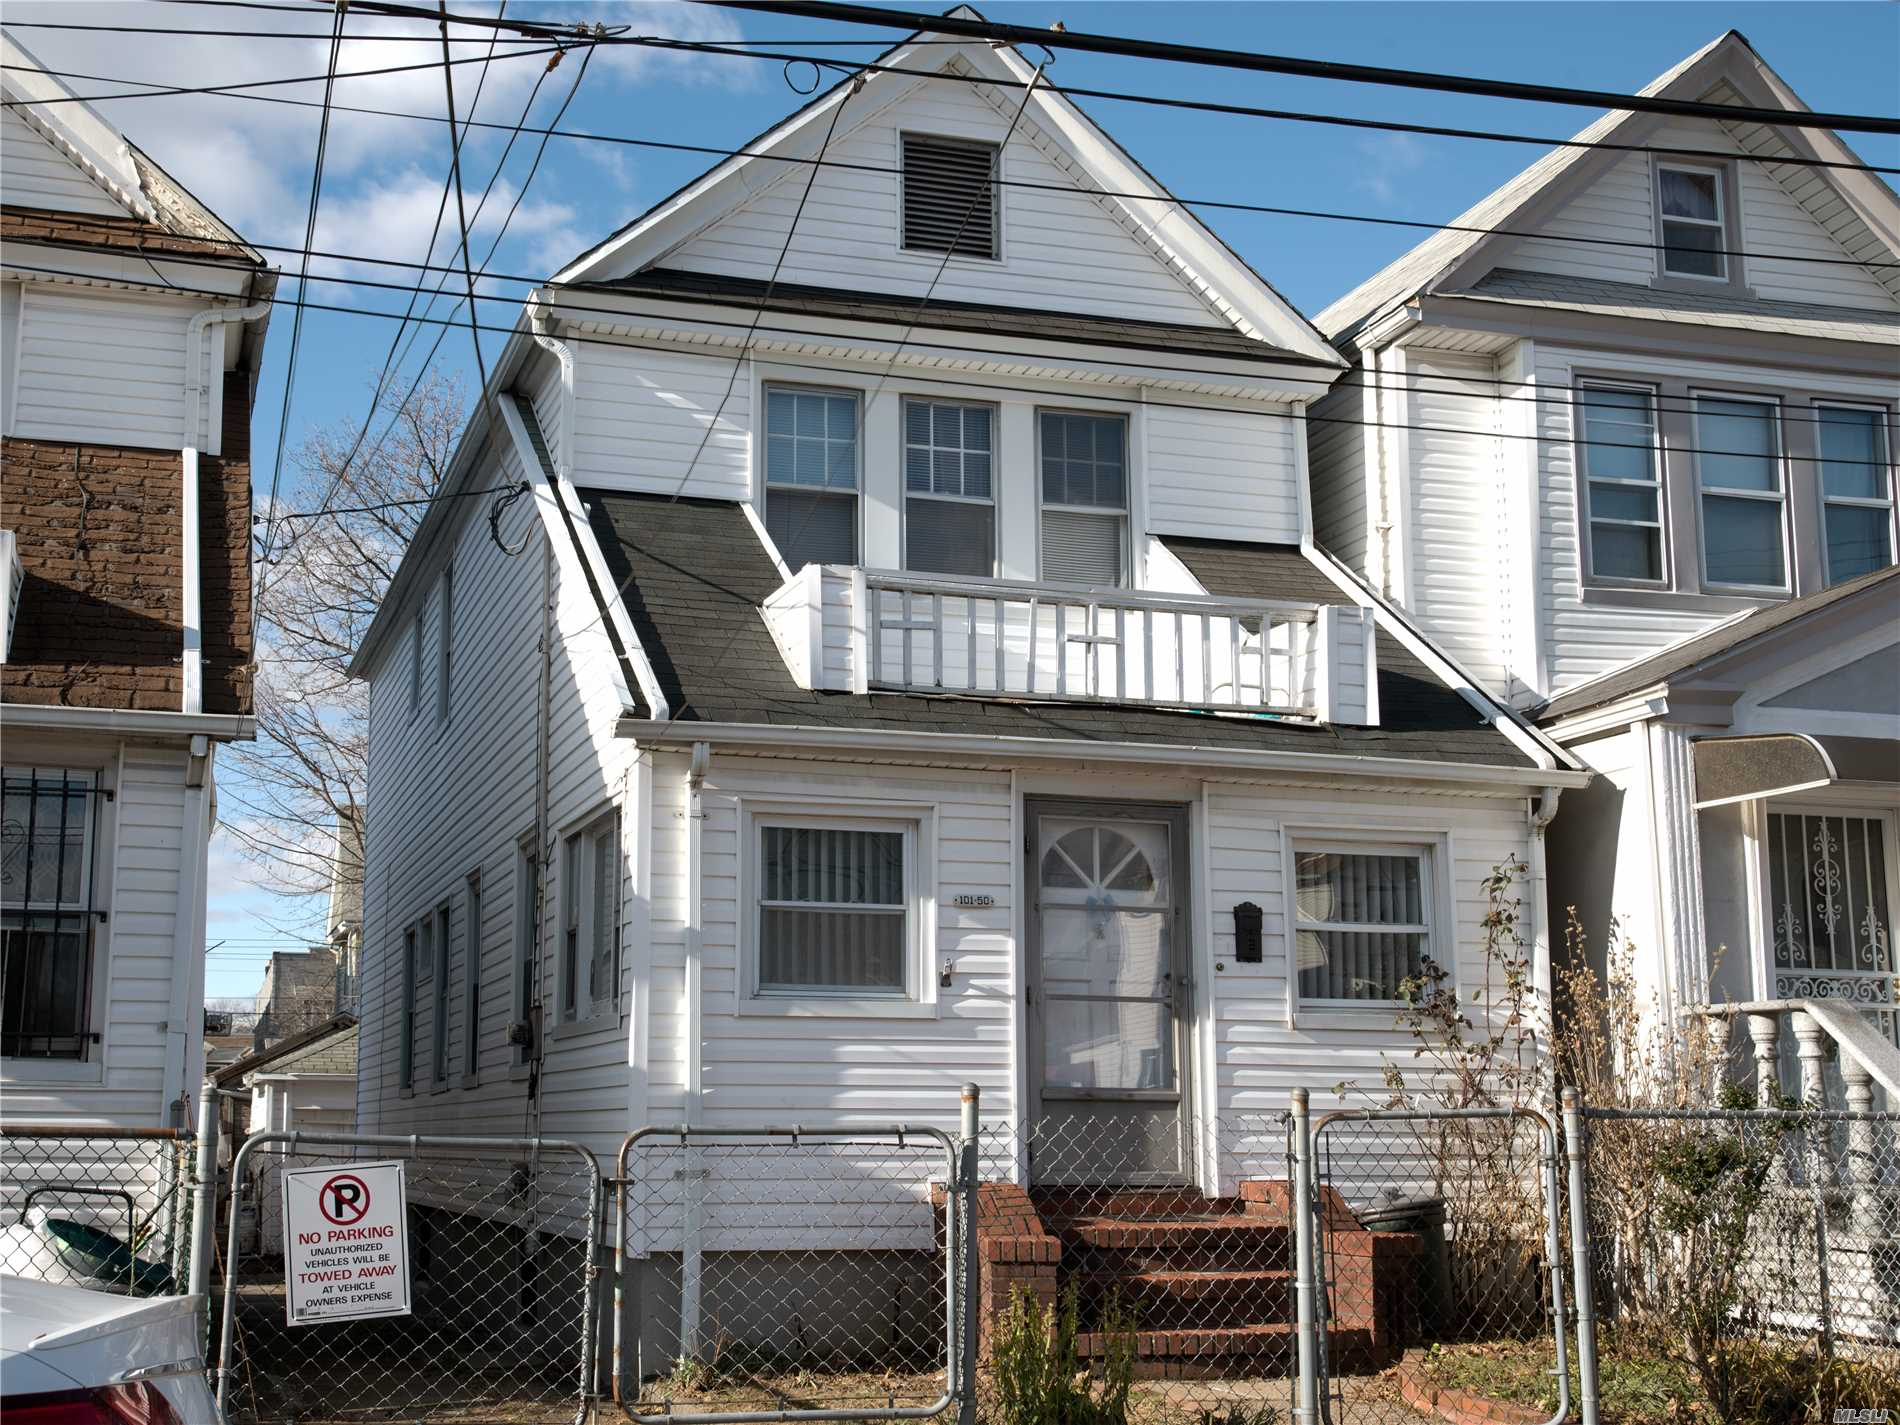 4 Year's Boiler, Heater, 7 Year's Roof, 9 Year's Siding. 2 Minutes Walk To A Train In 111th St ( Liberty ) Stop.